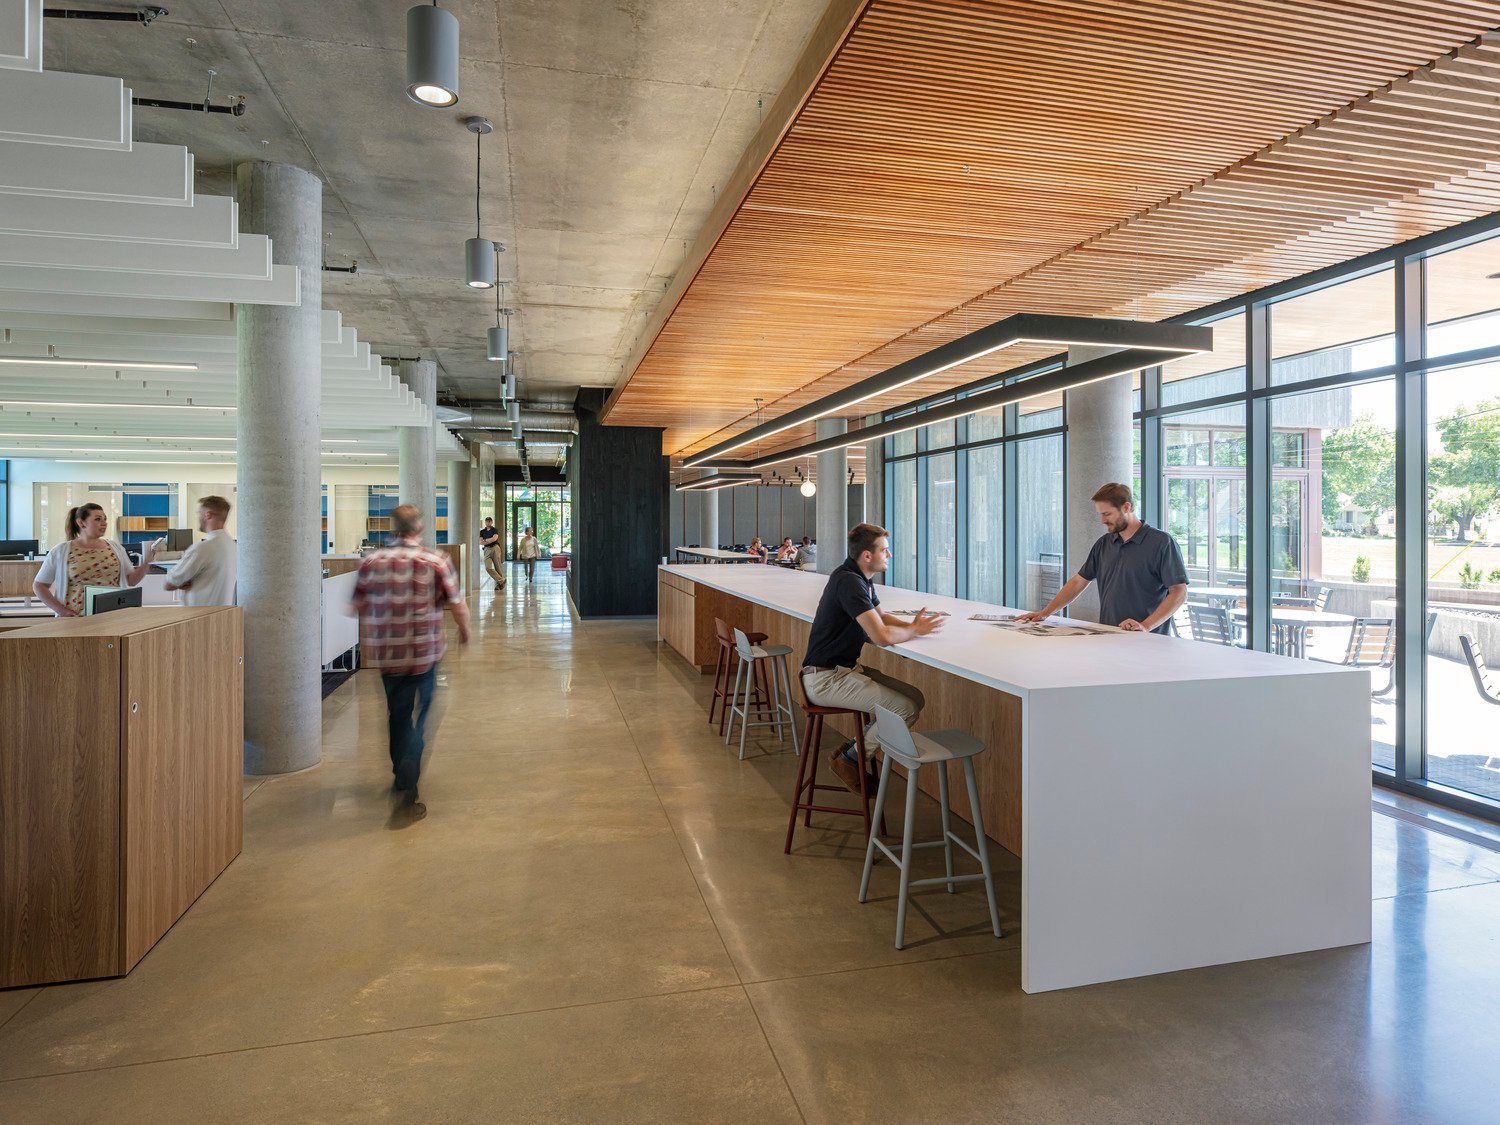 Strategies focused on using healthy, regional materials, maximizing daylighting and views, and creating a warm and engaging sense of place. Tim Griffith